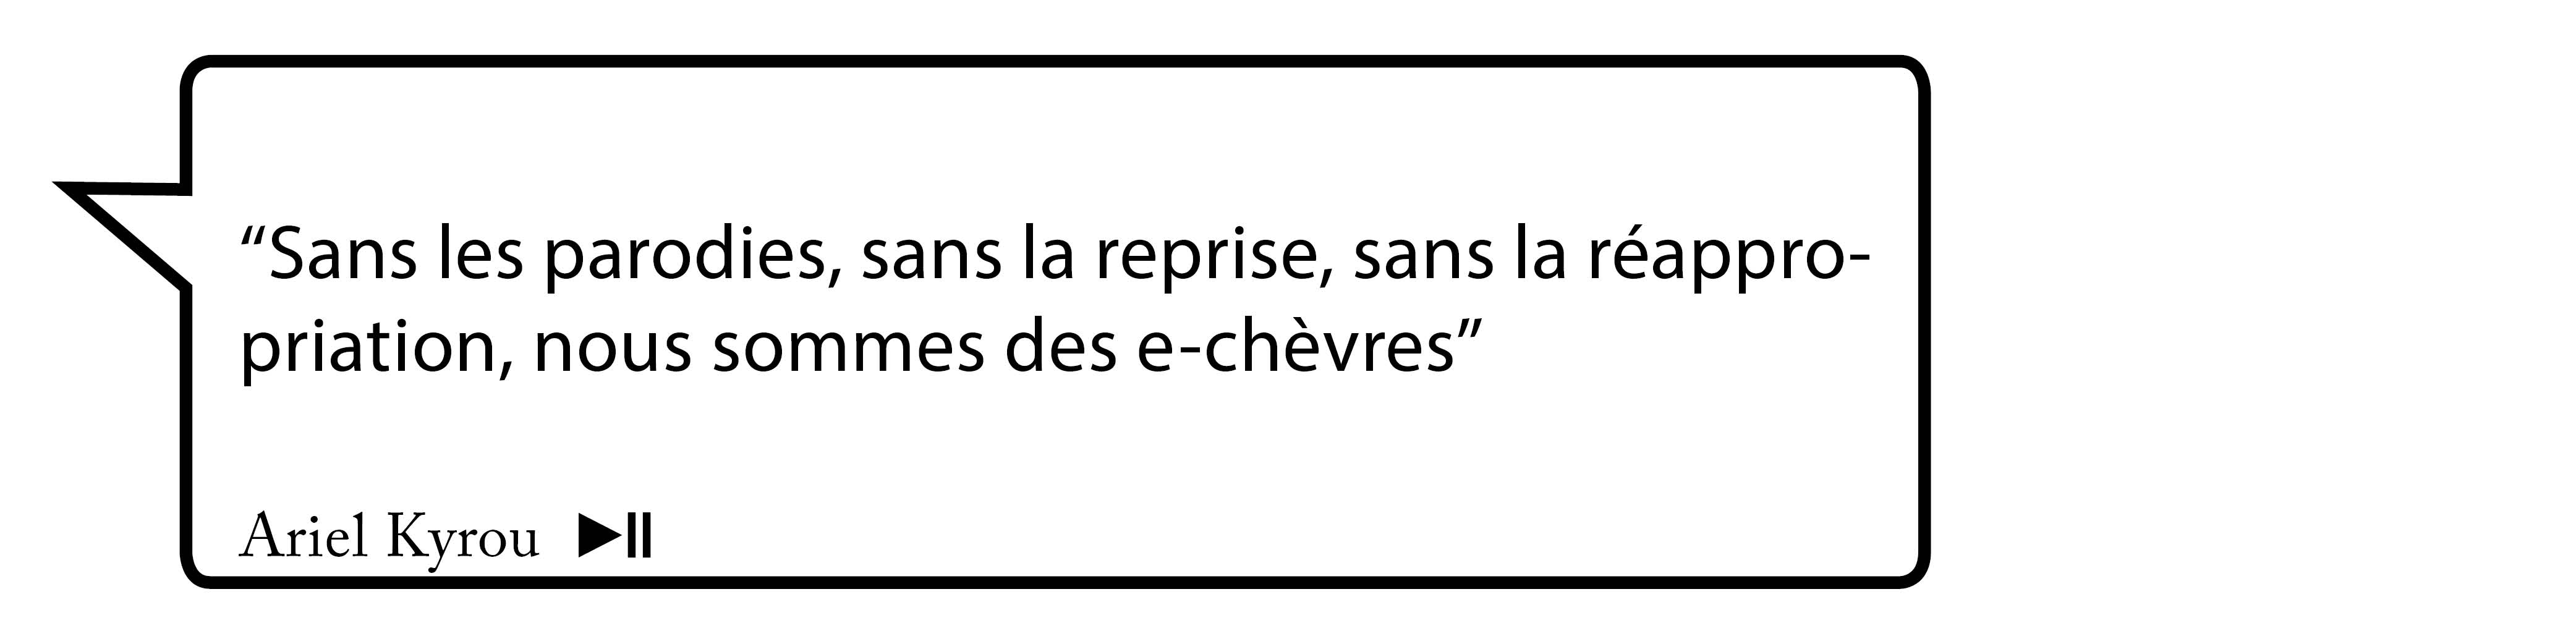 citationsblog14